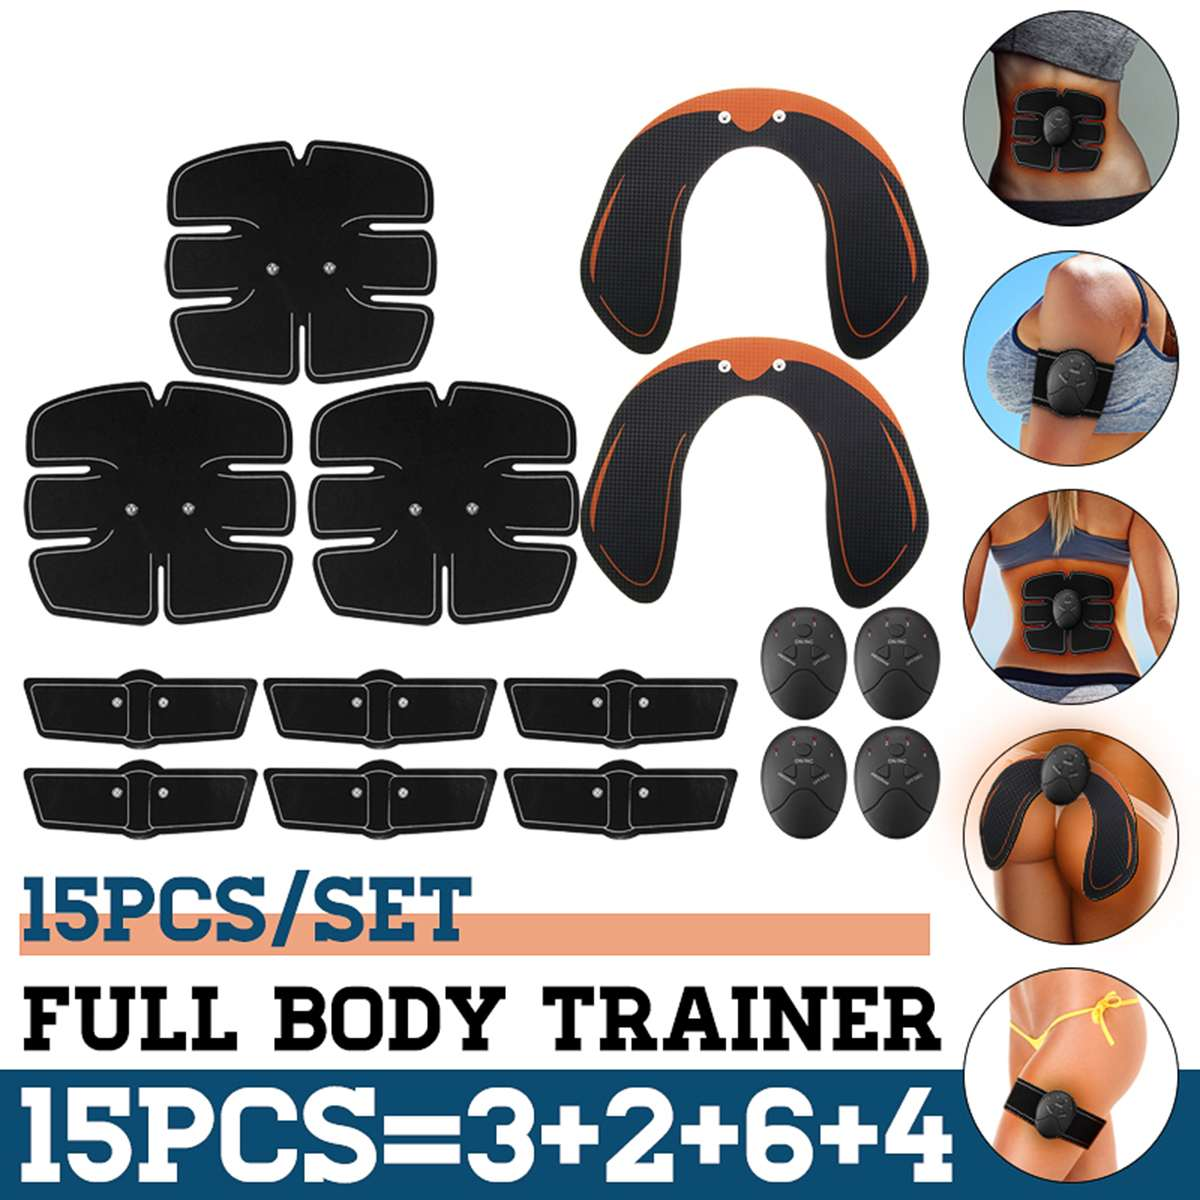 15PCS/Set EMS Muscle Abdominal Trainer Smart Muscle ABS Hip Abdominal Muscle Stimulator Massage Set Weight Loss Home Exercise